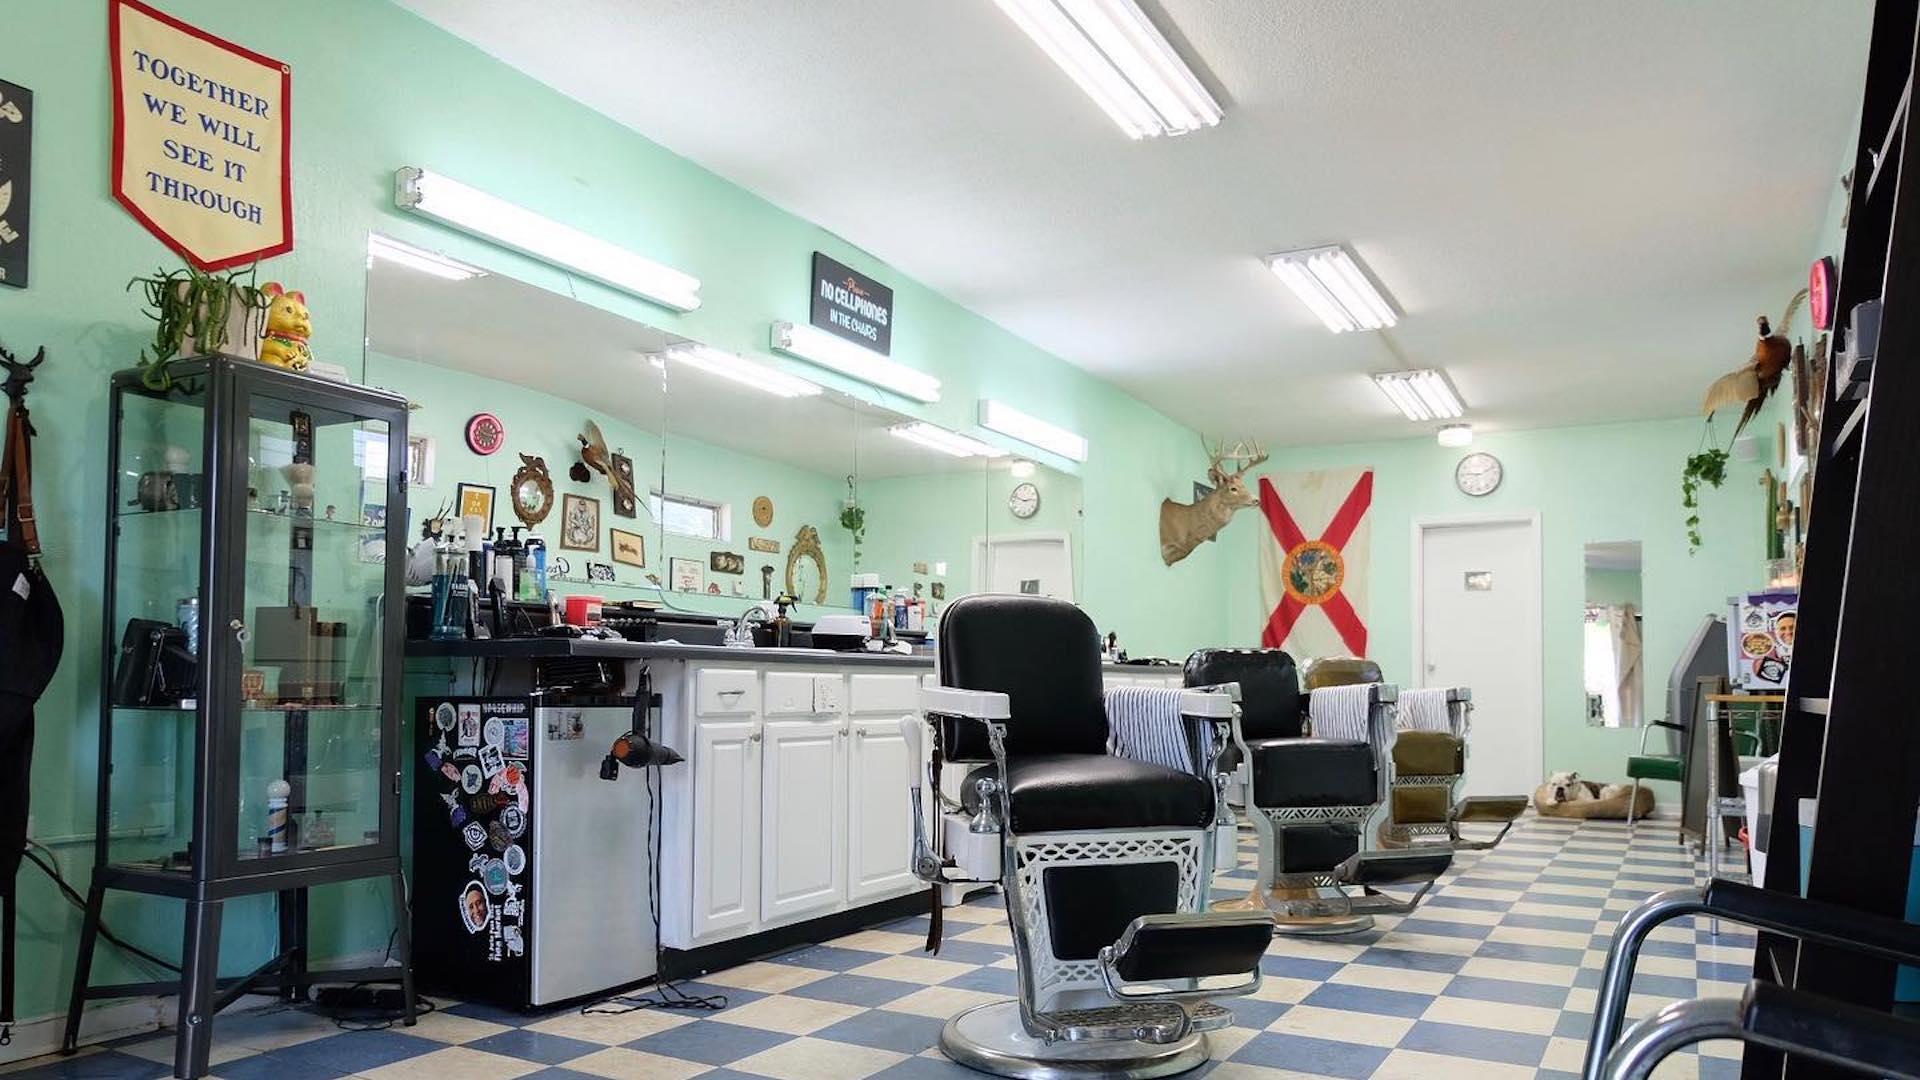 Interior of a barbershop with leather chairs and green walls